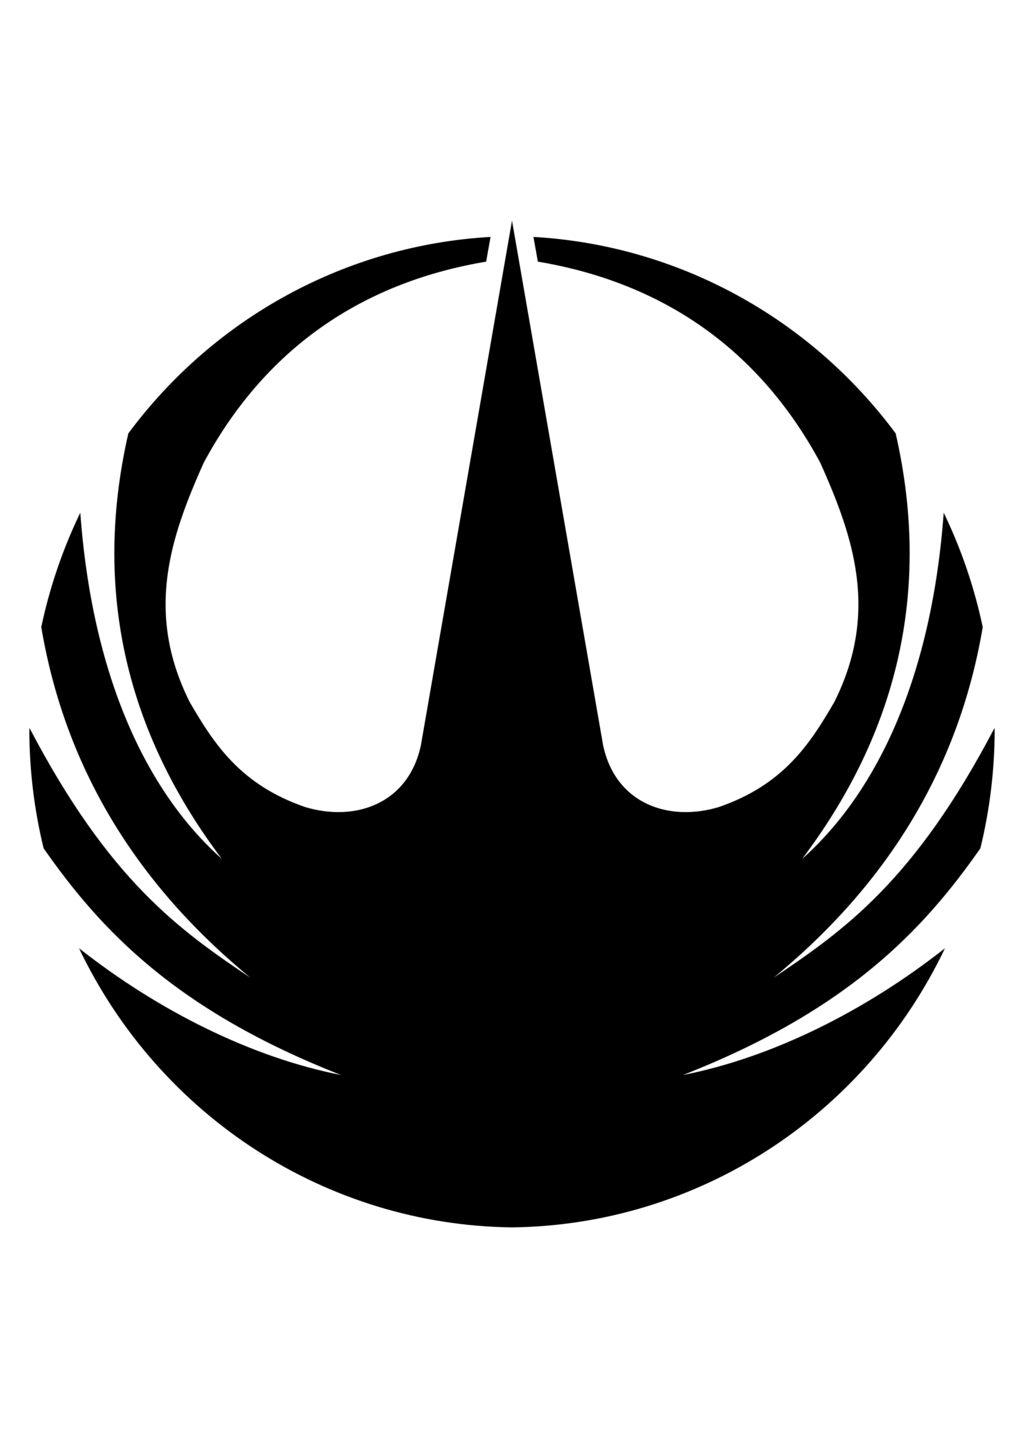 Star wars rogue one clipart banner royalty free library Rogue One Symbol transparent PNG - StickPNG banner royalty free library